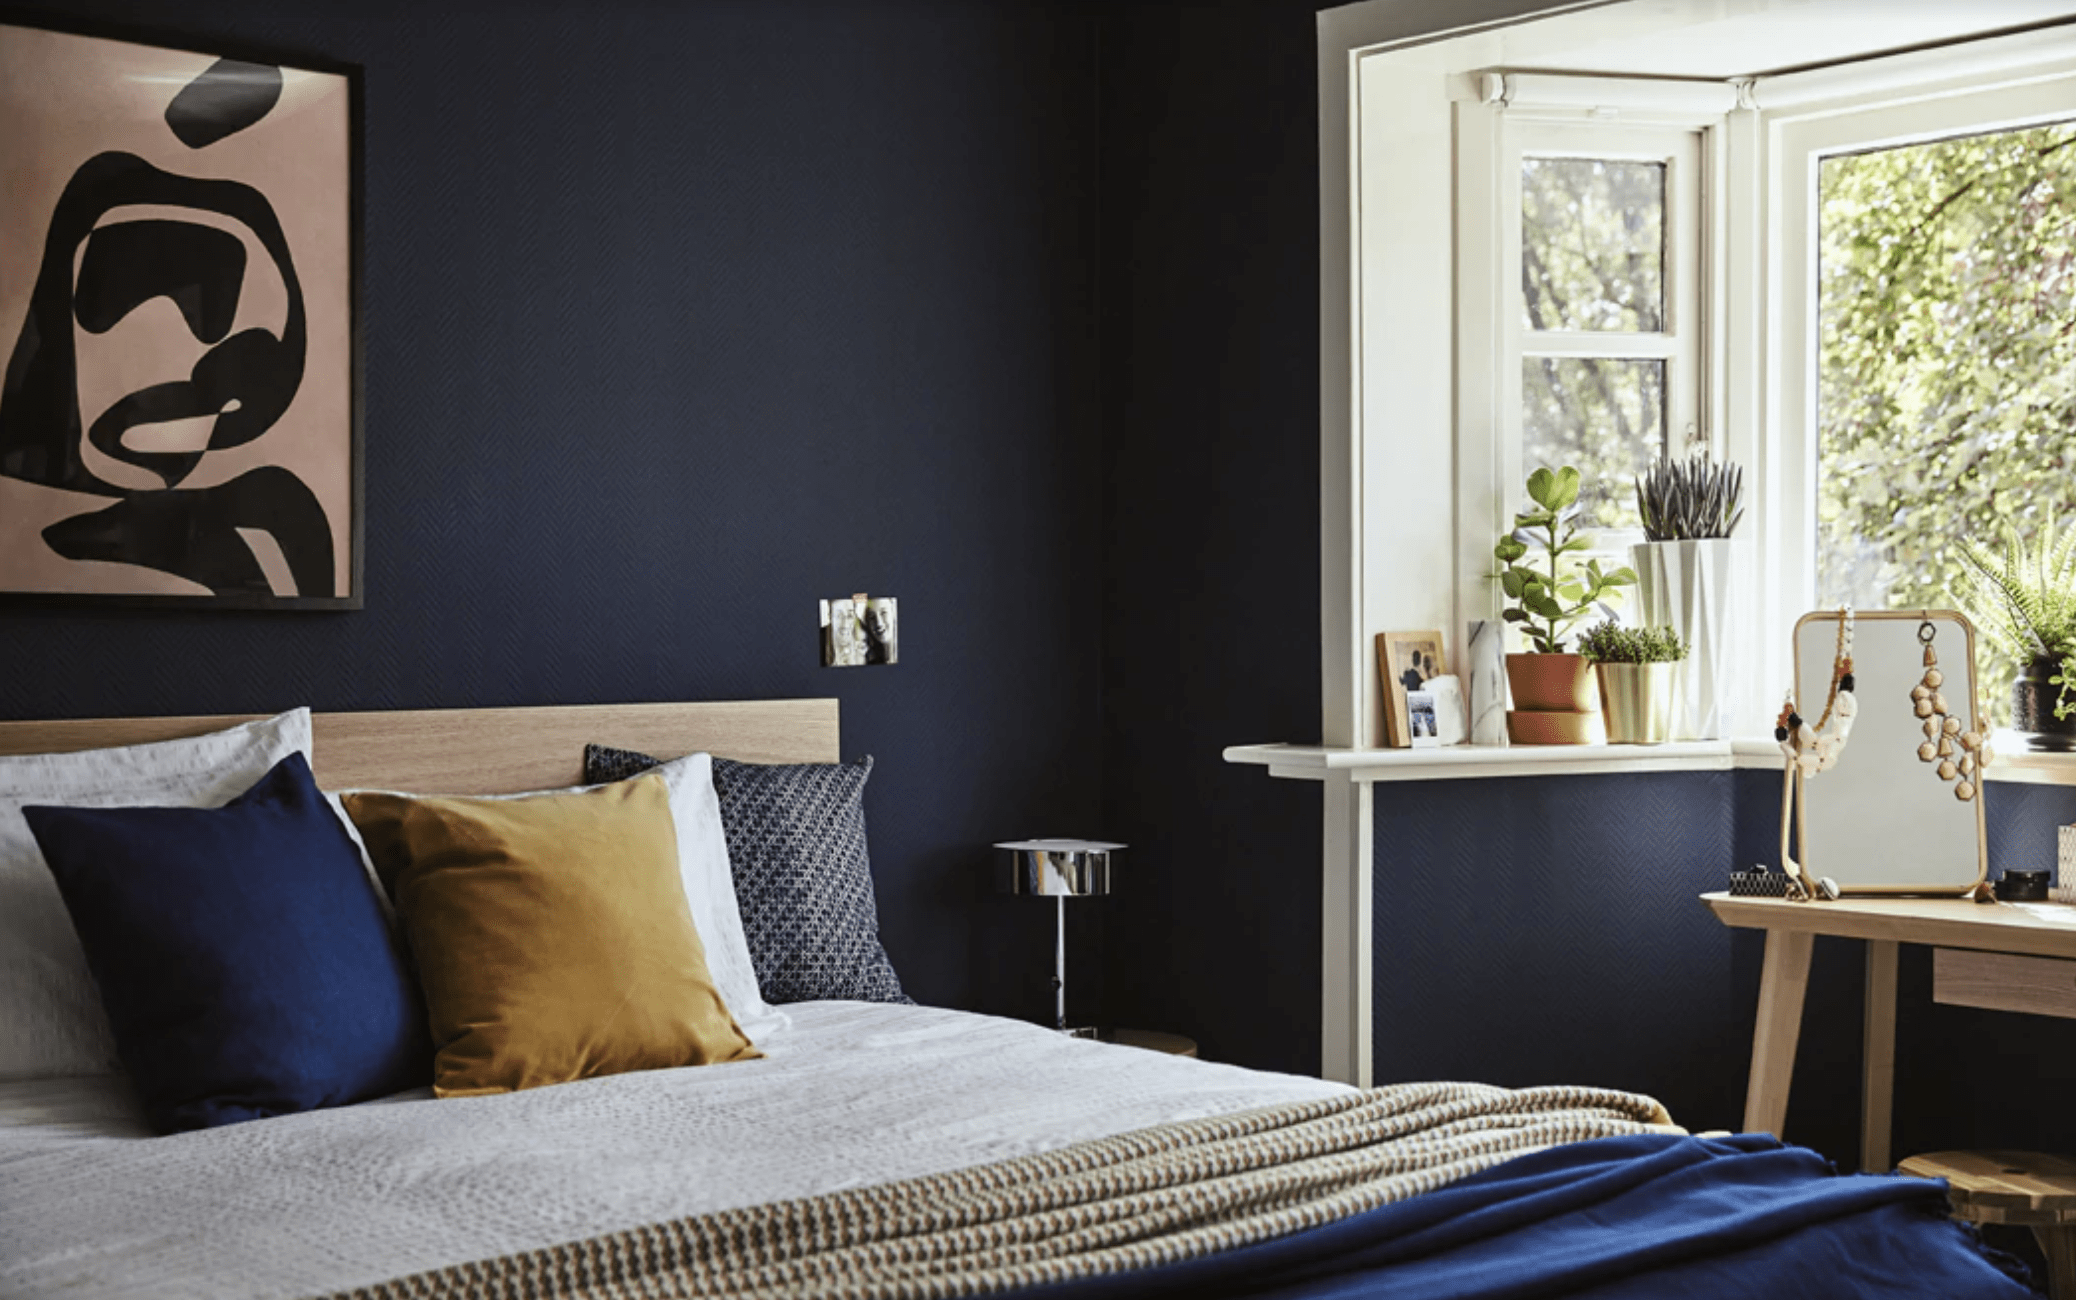 Ikea Is Expected To Launch A Furniture Rental Service Soon Here S Everything We Know So Far Relaxing Bedroom Small Master Bedroom Small Room Bedroom